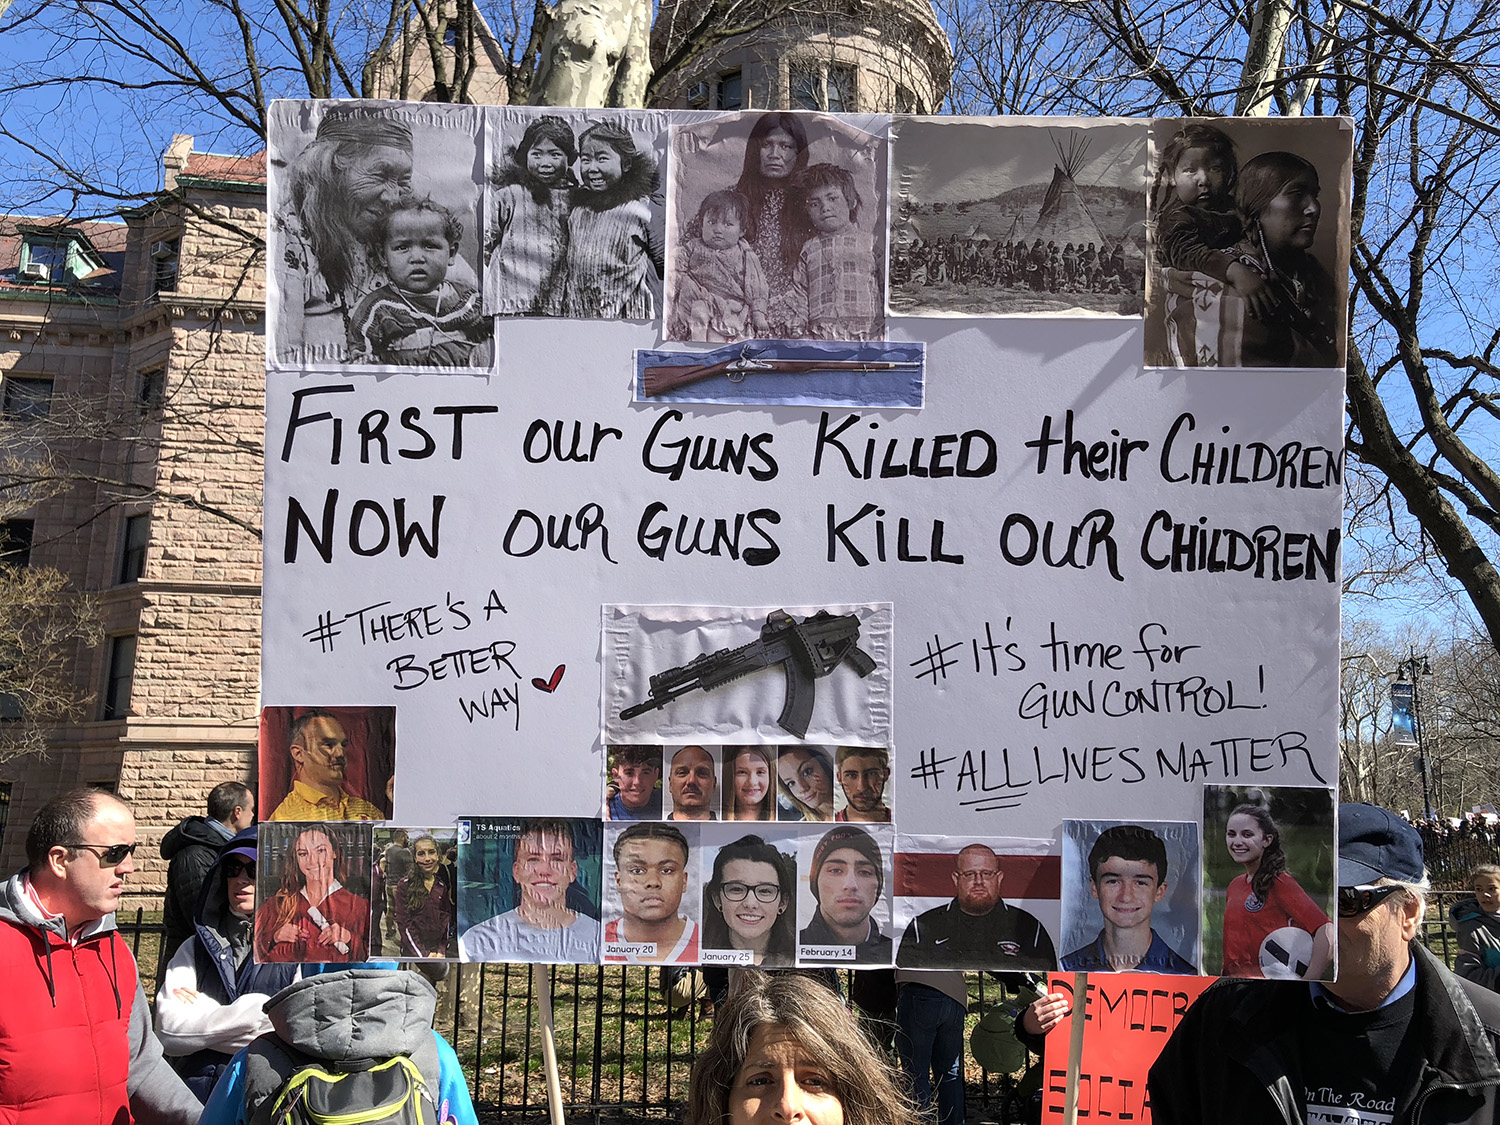 "<div class=""meta image-caption""><div class=""origin-logo origin-image none""><span>none</span></div><span class=""caption-text"">Thousands gathered on the Upper West Side to protest and march for gun control.</span></div>"